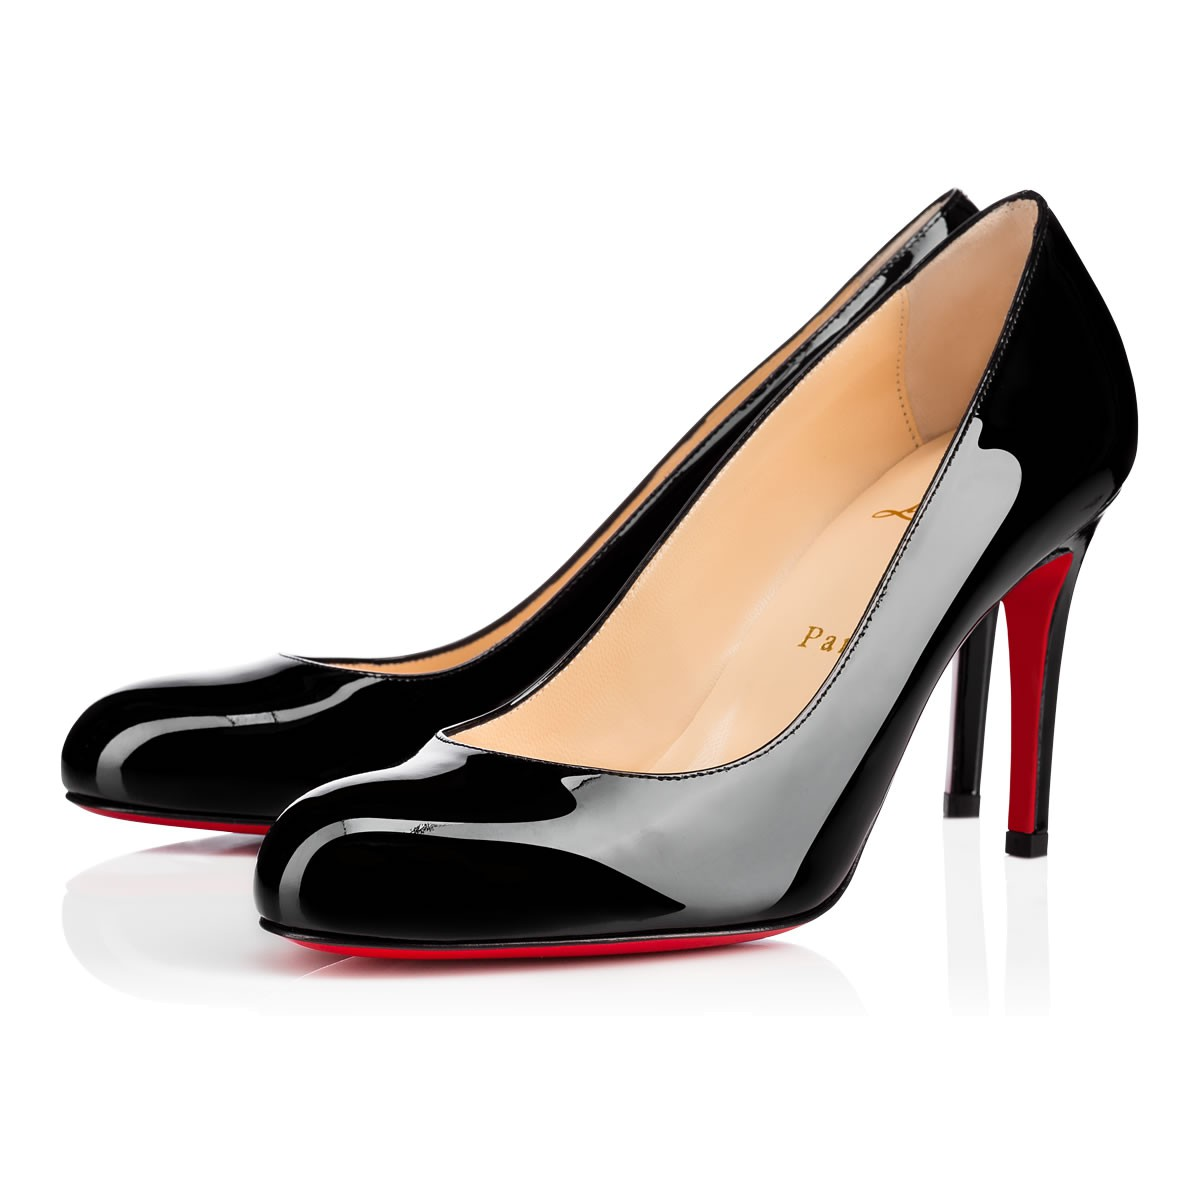 feeb70fc9e Simple Pump. Christian Louboutin's Simple Pump in black patent leather ...